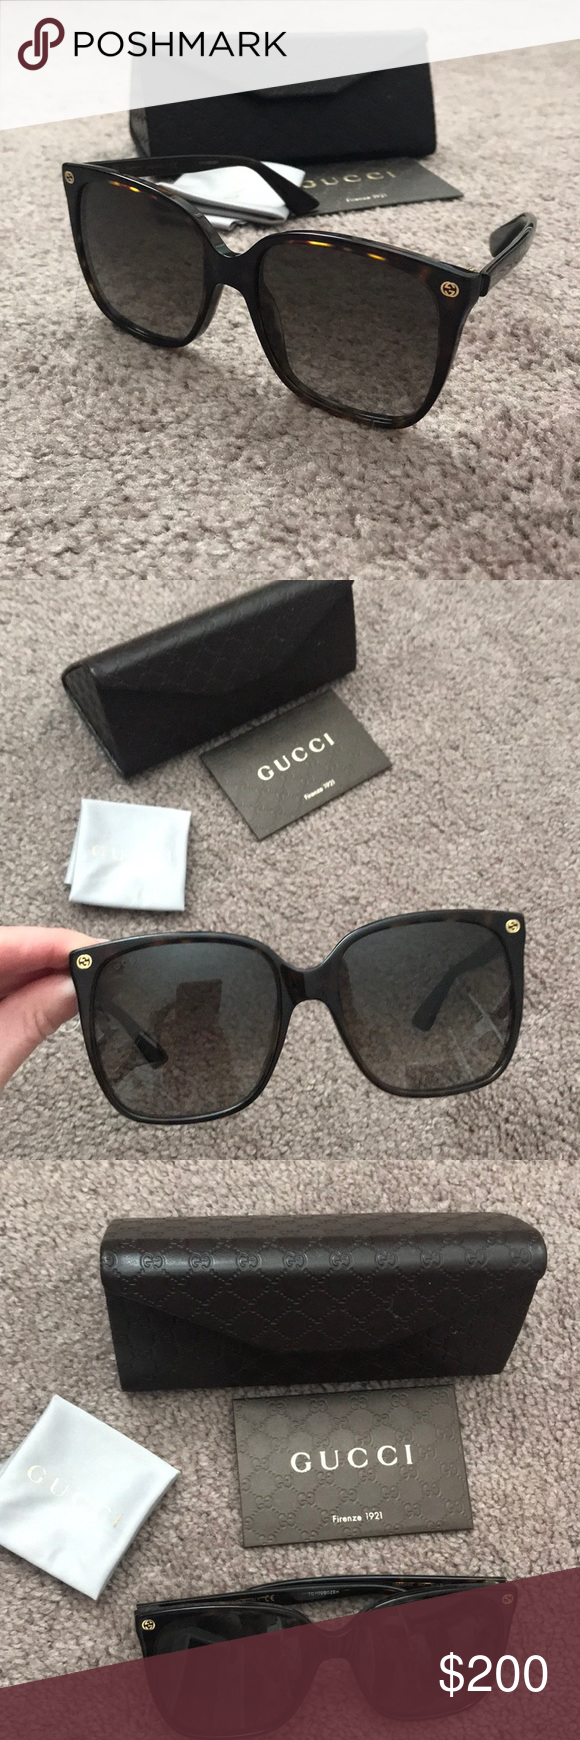 6486307bd Gucci women's sunglasses Dark tortoise Gucci women's sunglasses. Brand new  never worn. Paid $275.00 at Bloomingdale's. Comes with case and cleaning  cloth.